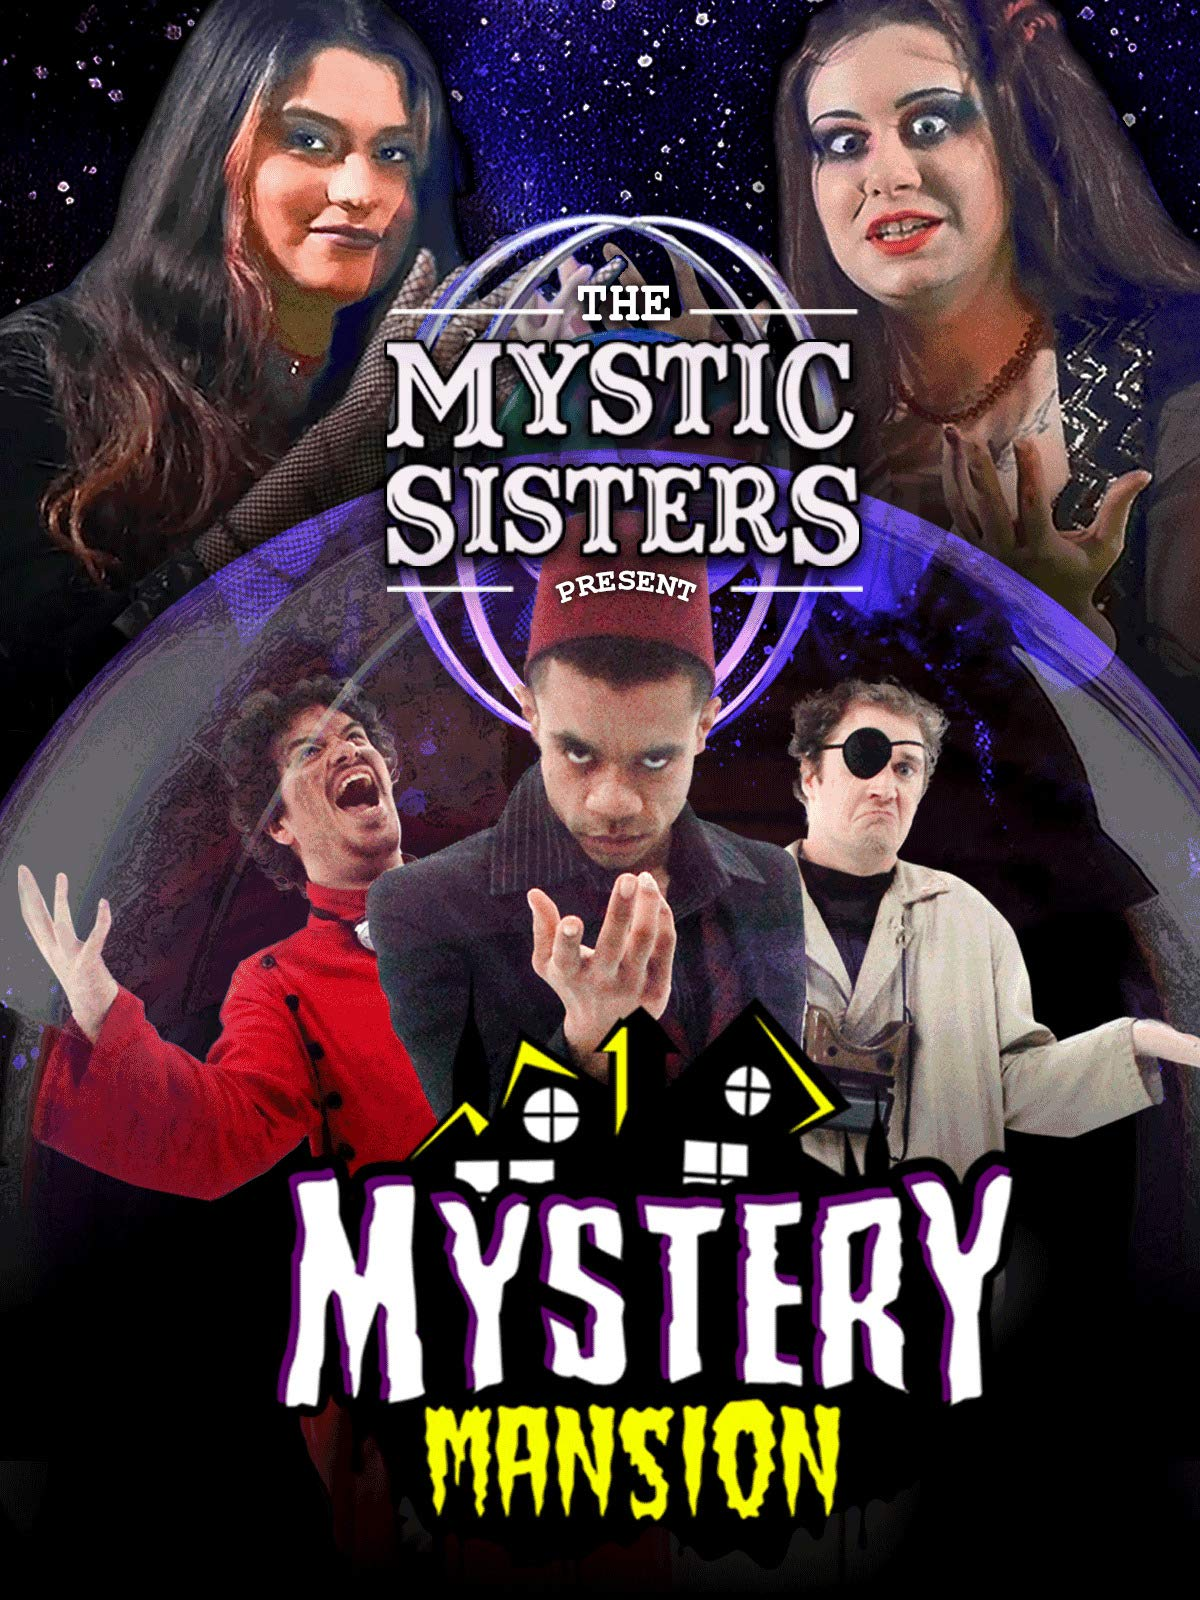 The Mystic Sisters Present: Mystery Mansion